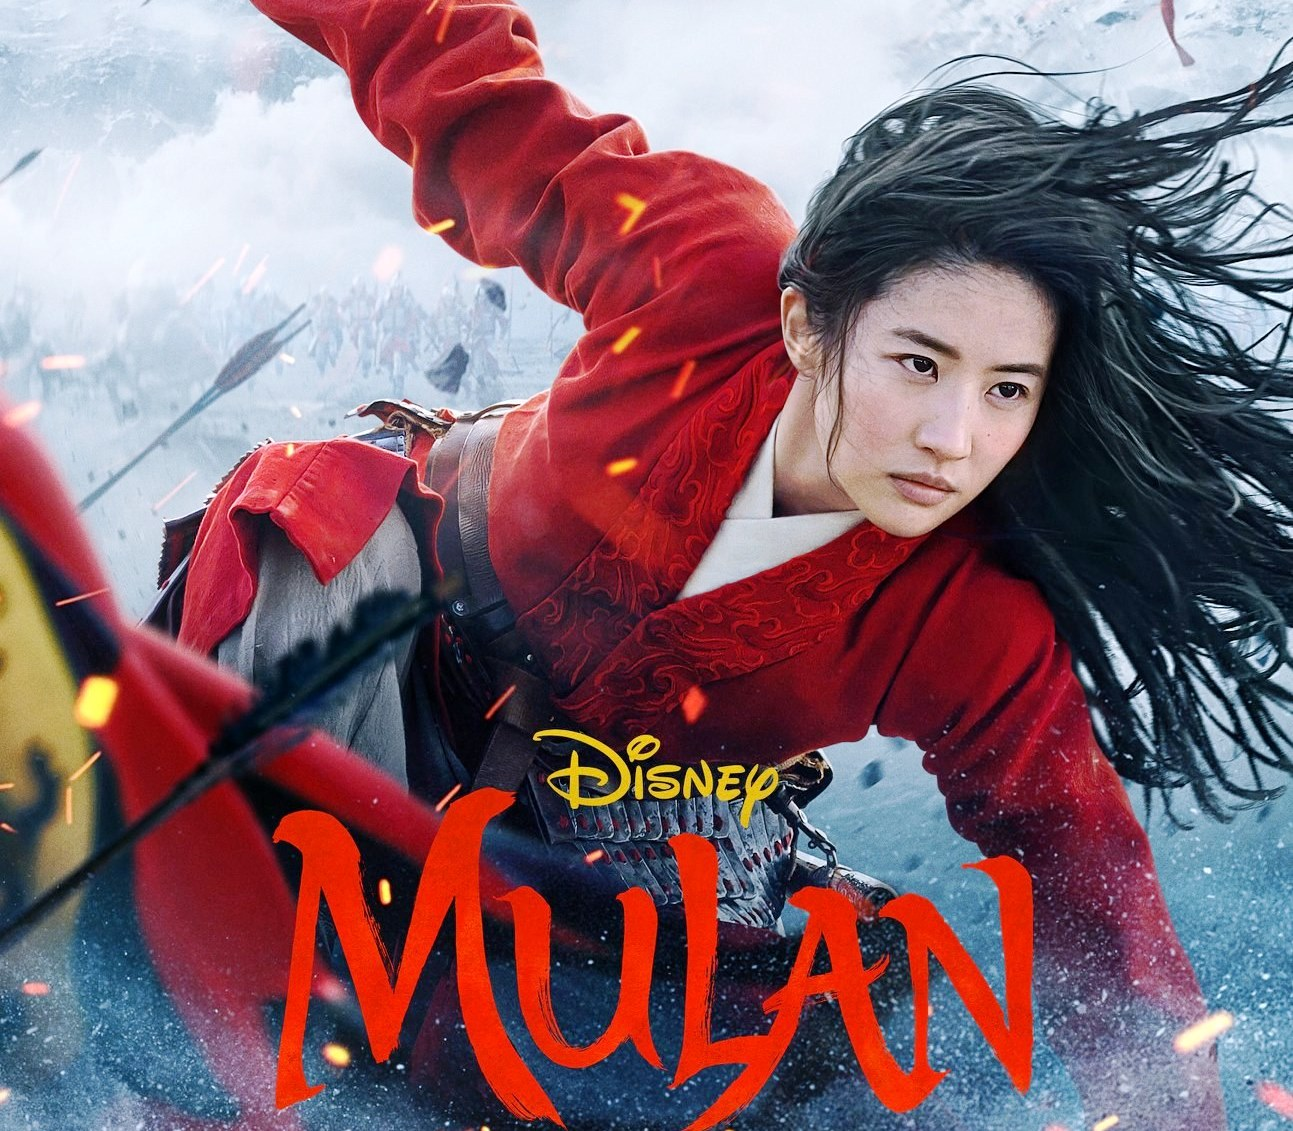 Disney's 'Mulan' has run into controversy for being partly filmed in the Xinjiang region, where China's clampdown on ethnic Uighurs and other Muslims has been criticised by some governments, including the United States, and human rights groups.